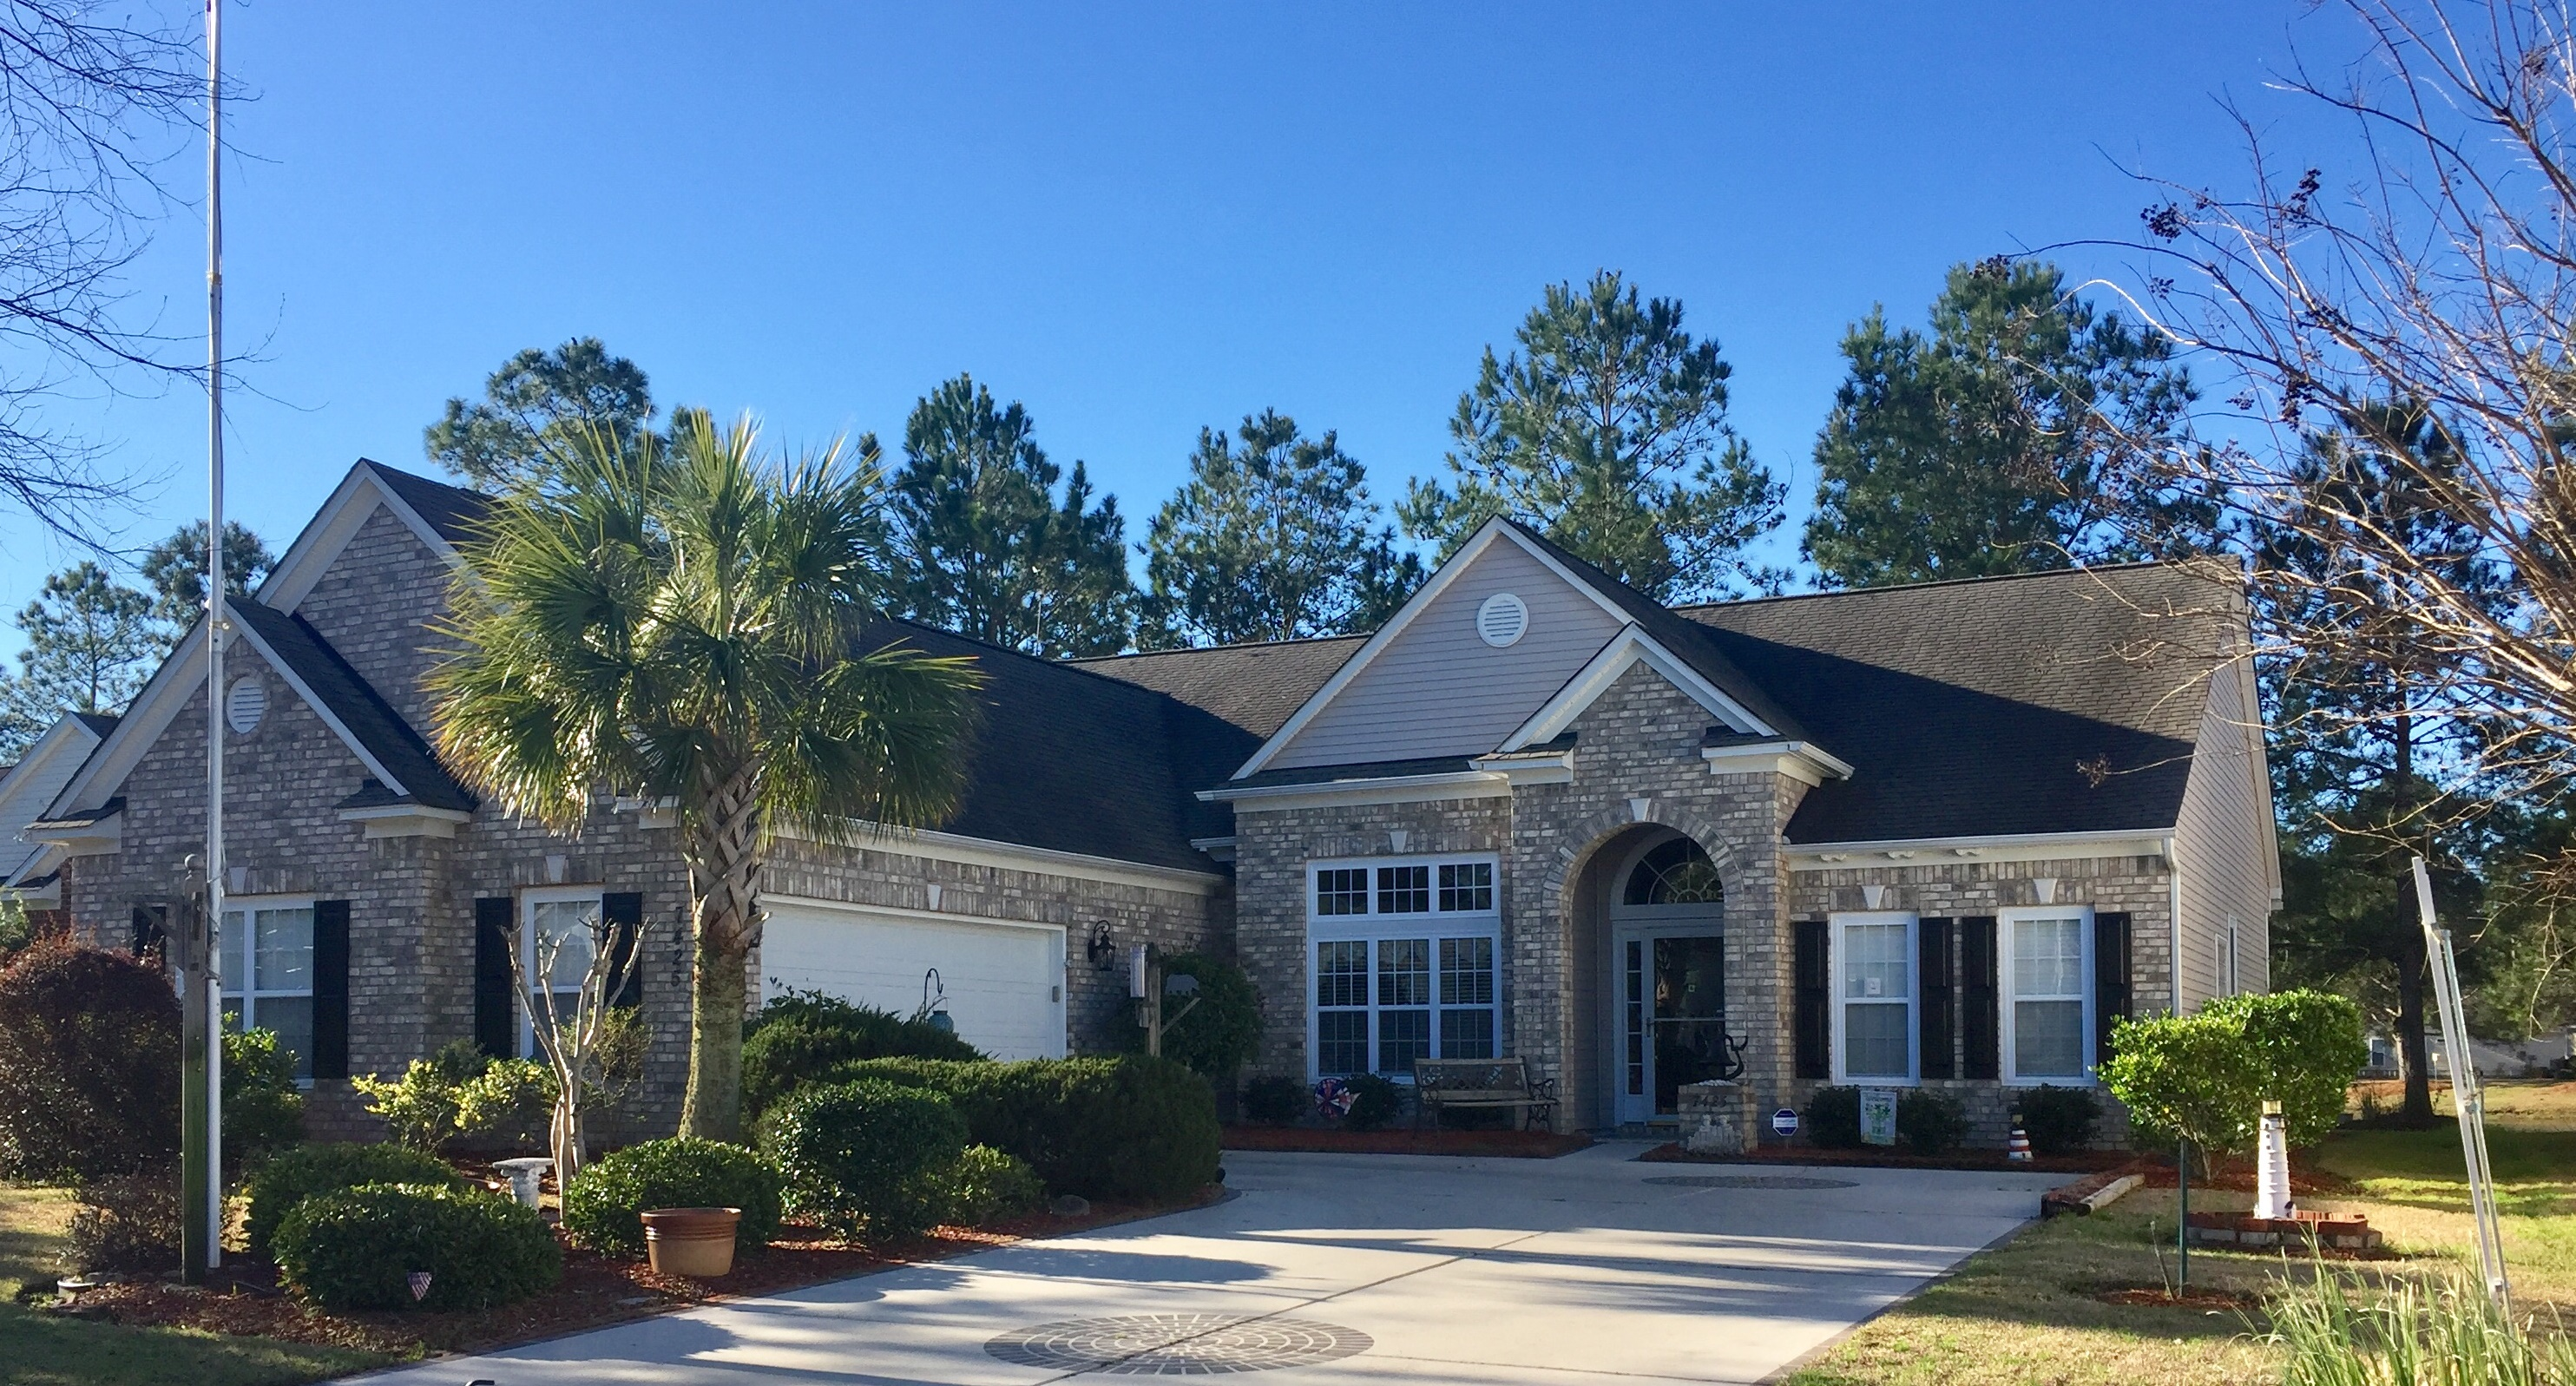 7425 Balmore Drive SW, Sunset Beach, NC 28468 (Sandpiper Bay)